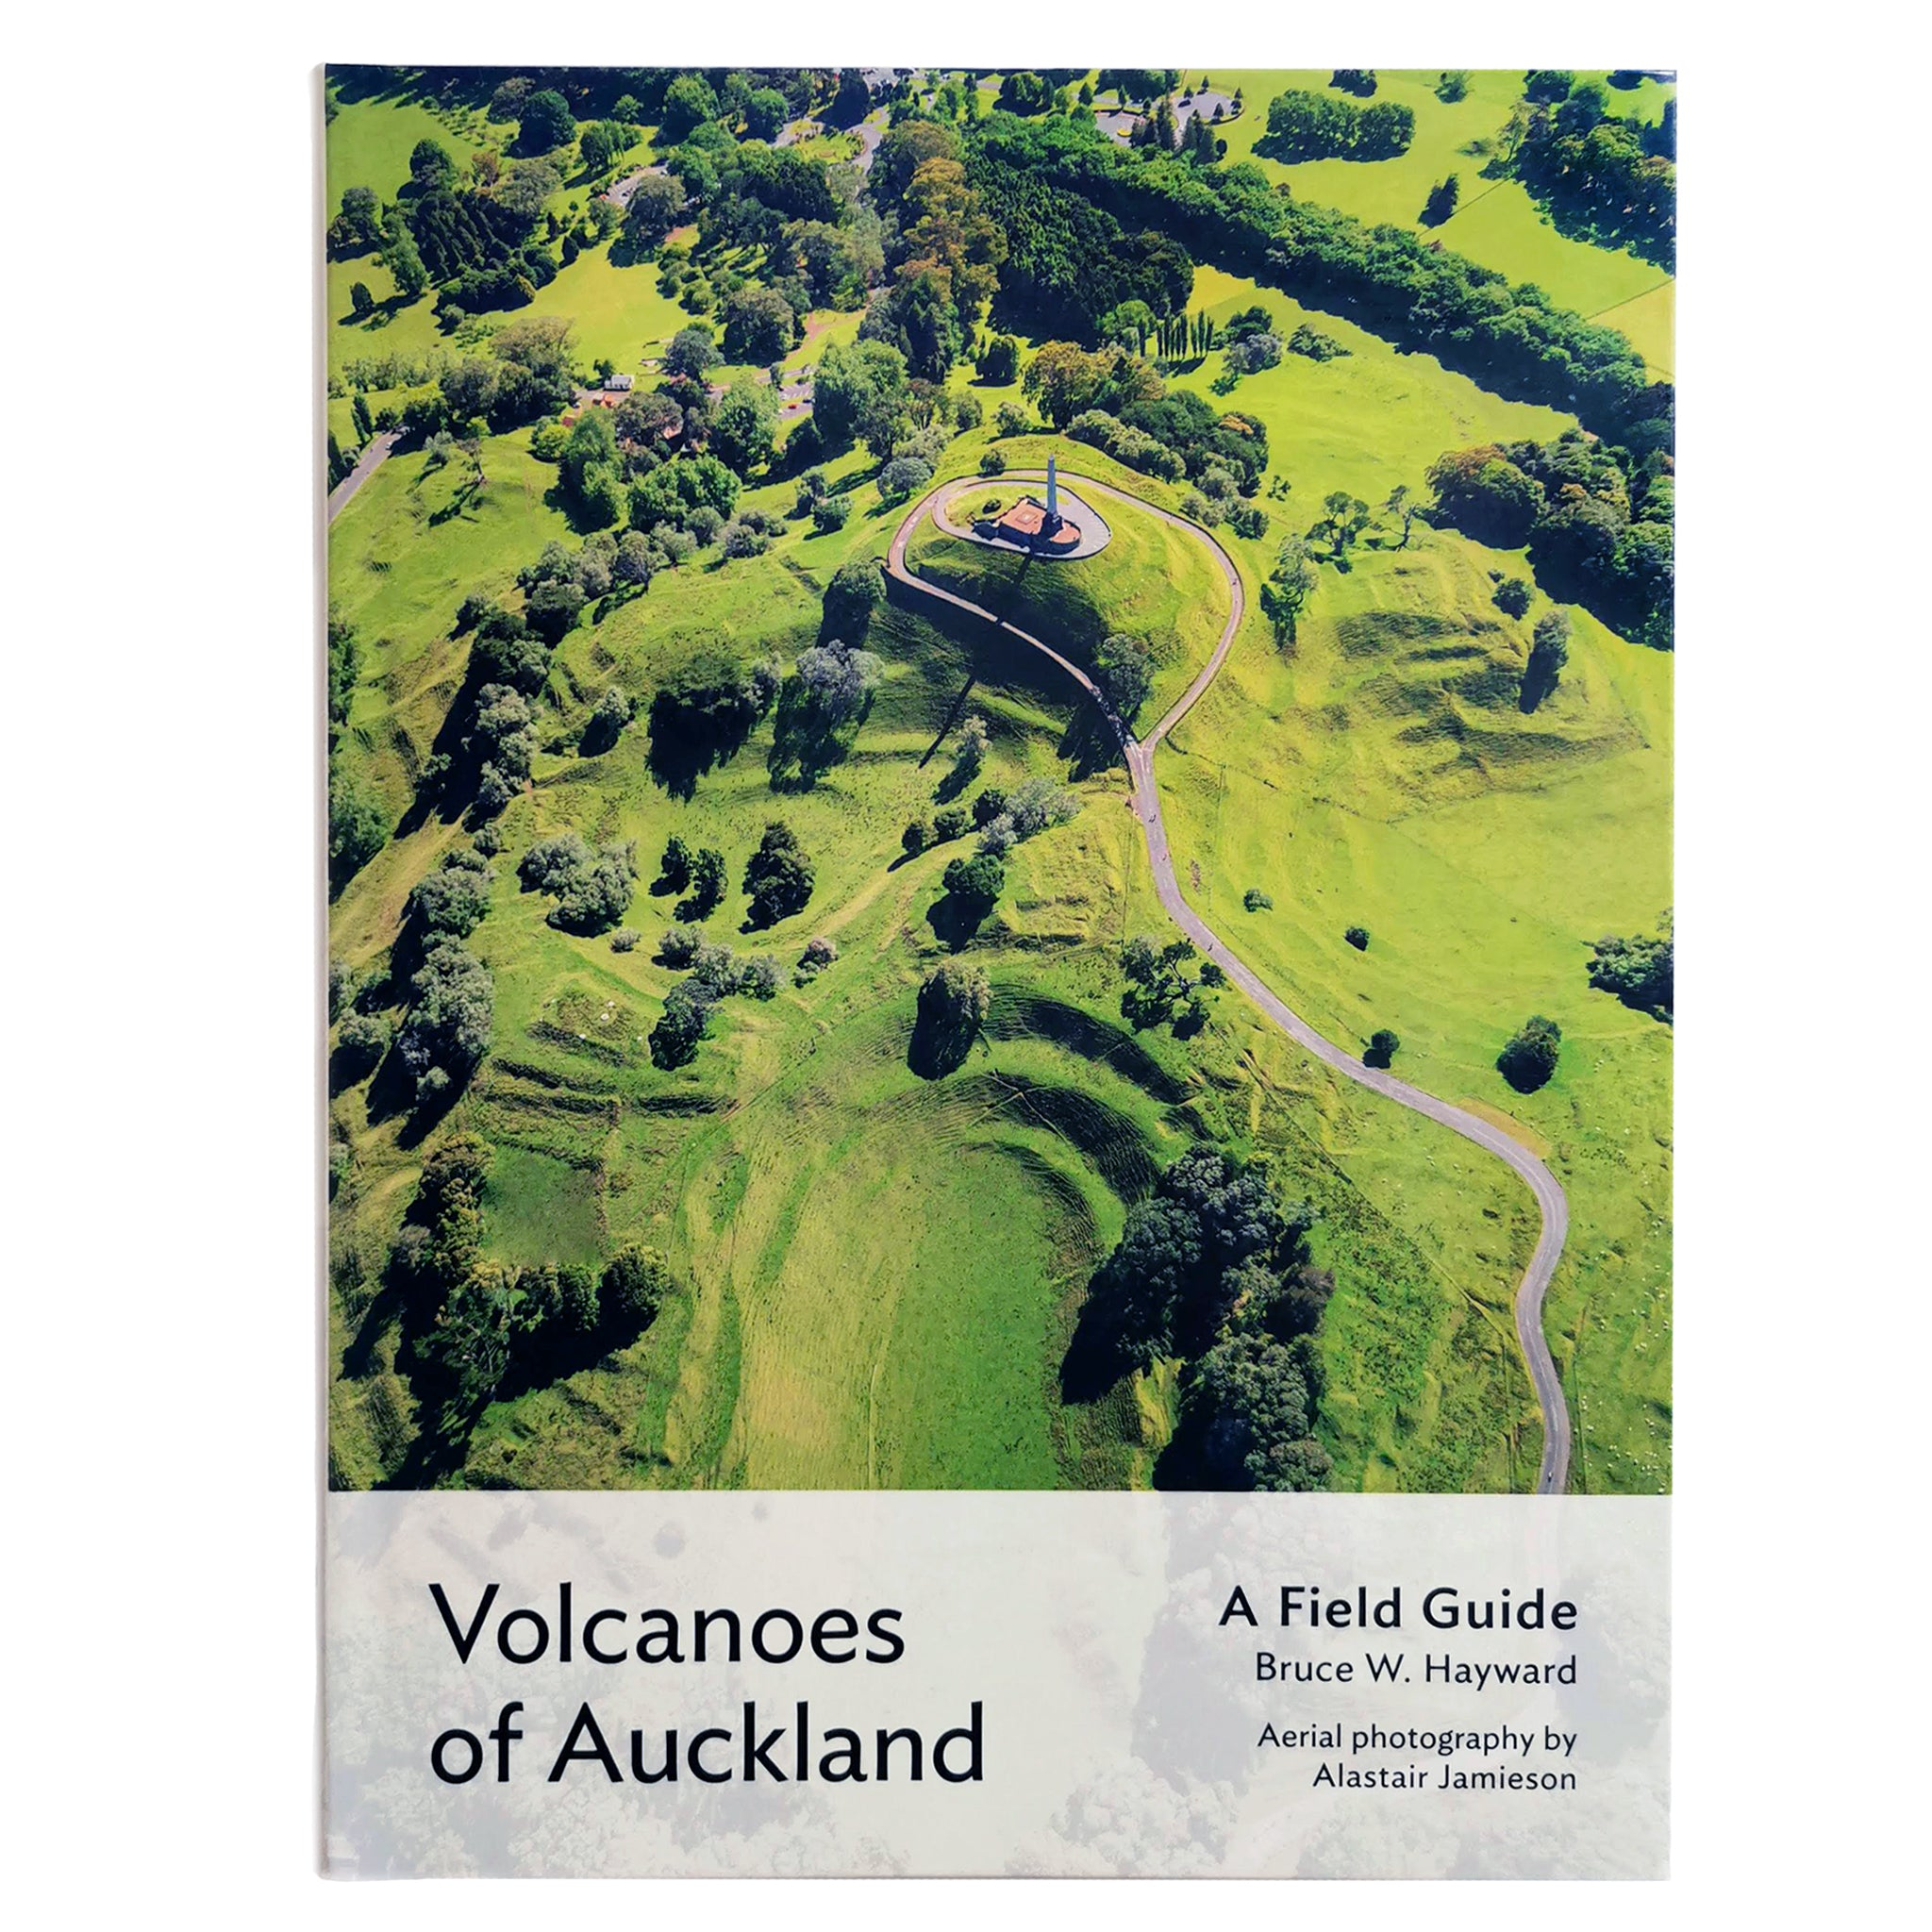 Volcanoes of Auckland Image